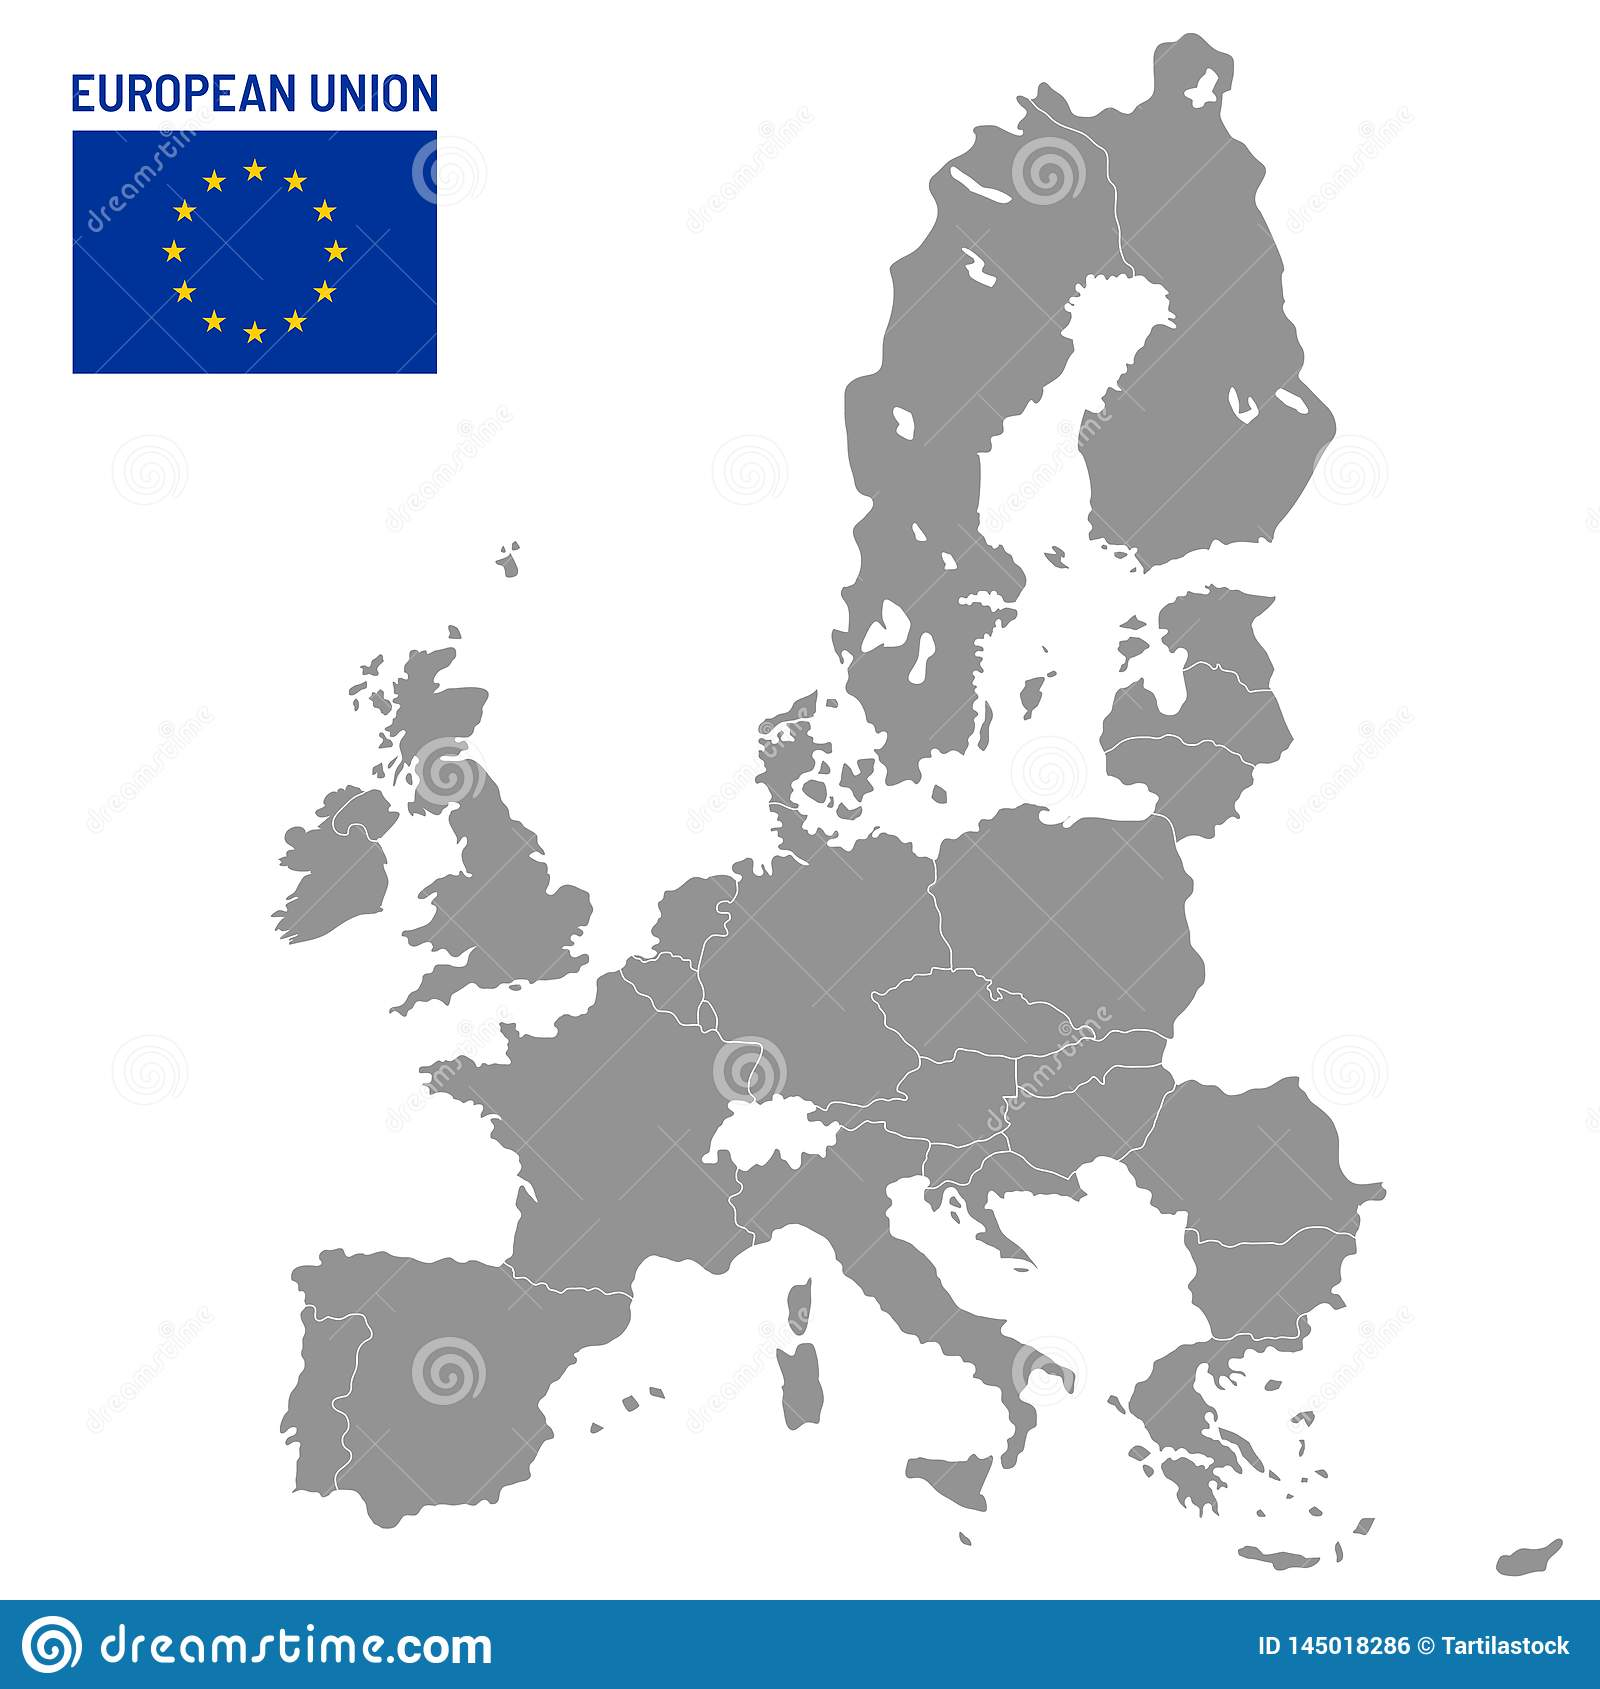 European Union Map. EU Member Countries, Europe Country ... on online atlas of europe, climate map of europe, atlas asia map, atlas europe with capitals, world map europe, large map of europe, map of western europe, 1660 map of europe, rivers of europe, political map of europe, map of southern europe, detailed map of europe, 1872 map of europe, current atlas of europe, view of europe, current map europe, gerardus mercator map of europe, aerial map of europe, attractions of europe,